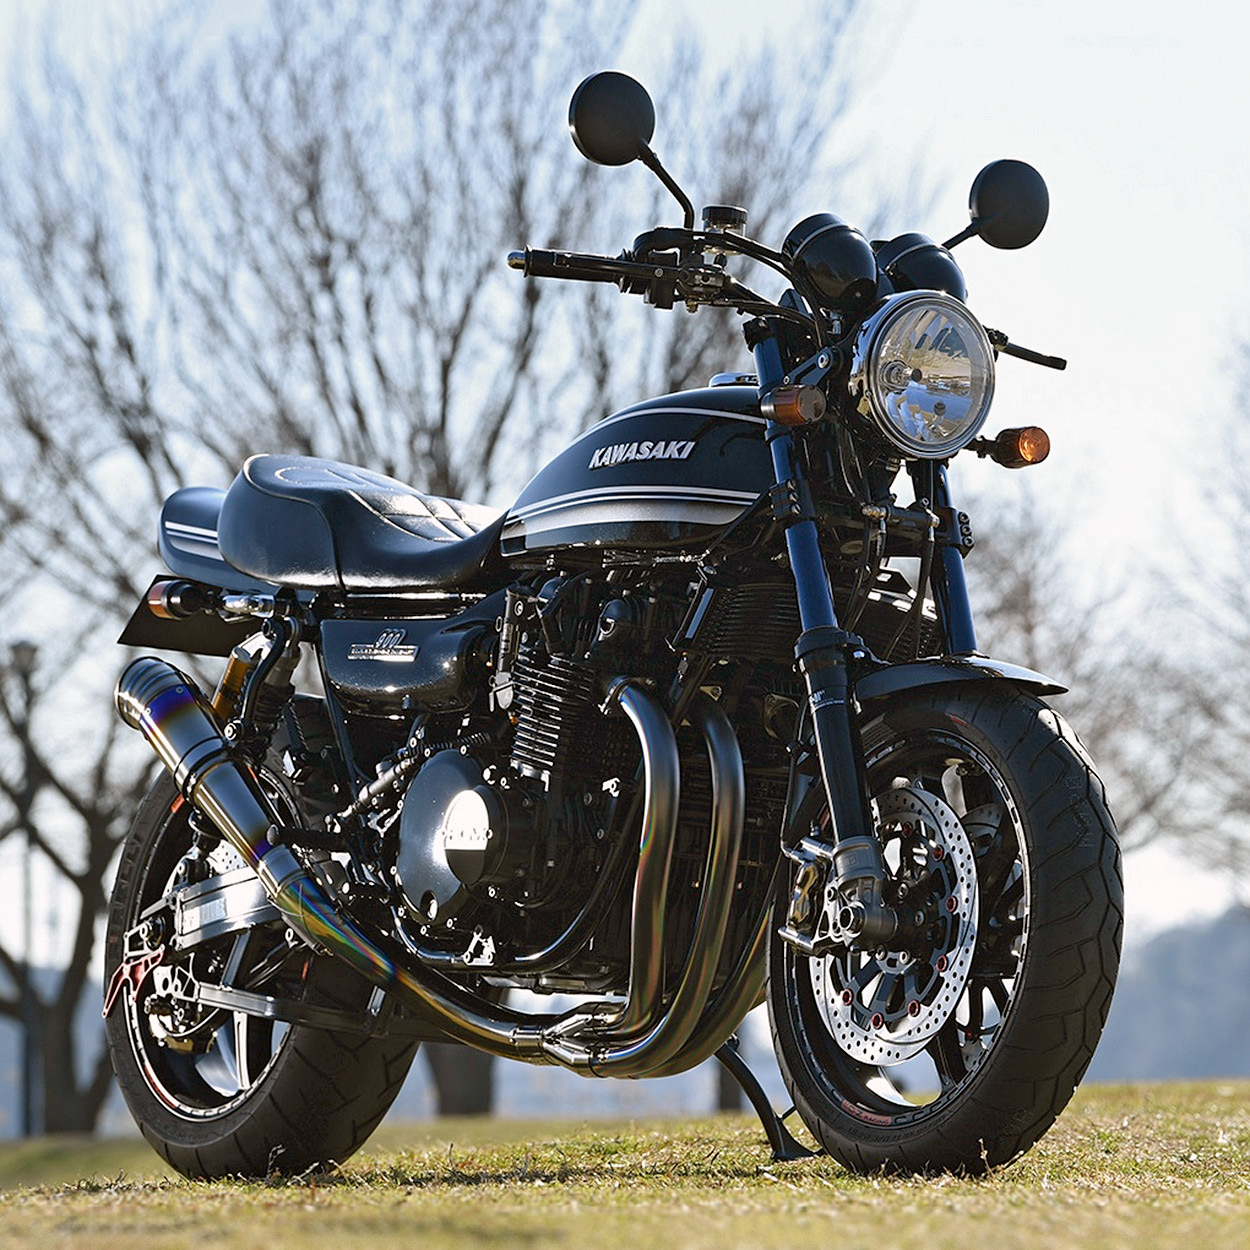 RCM-507: A new AC Sanctuary Kawasaki Z1 restomod